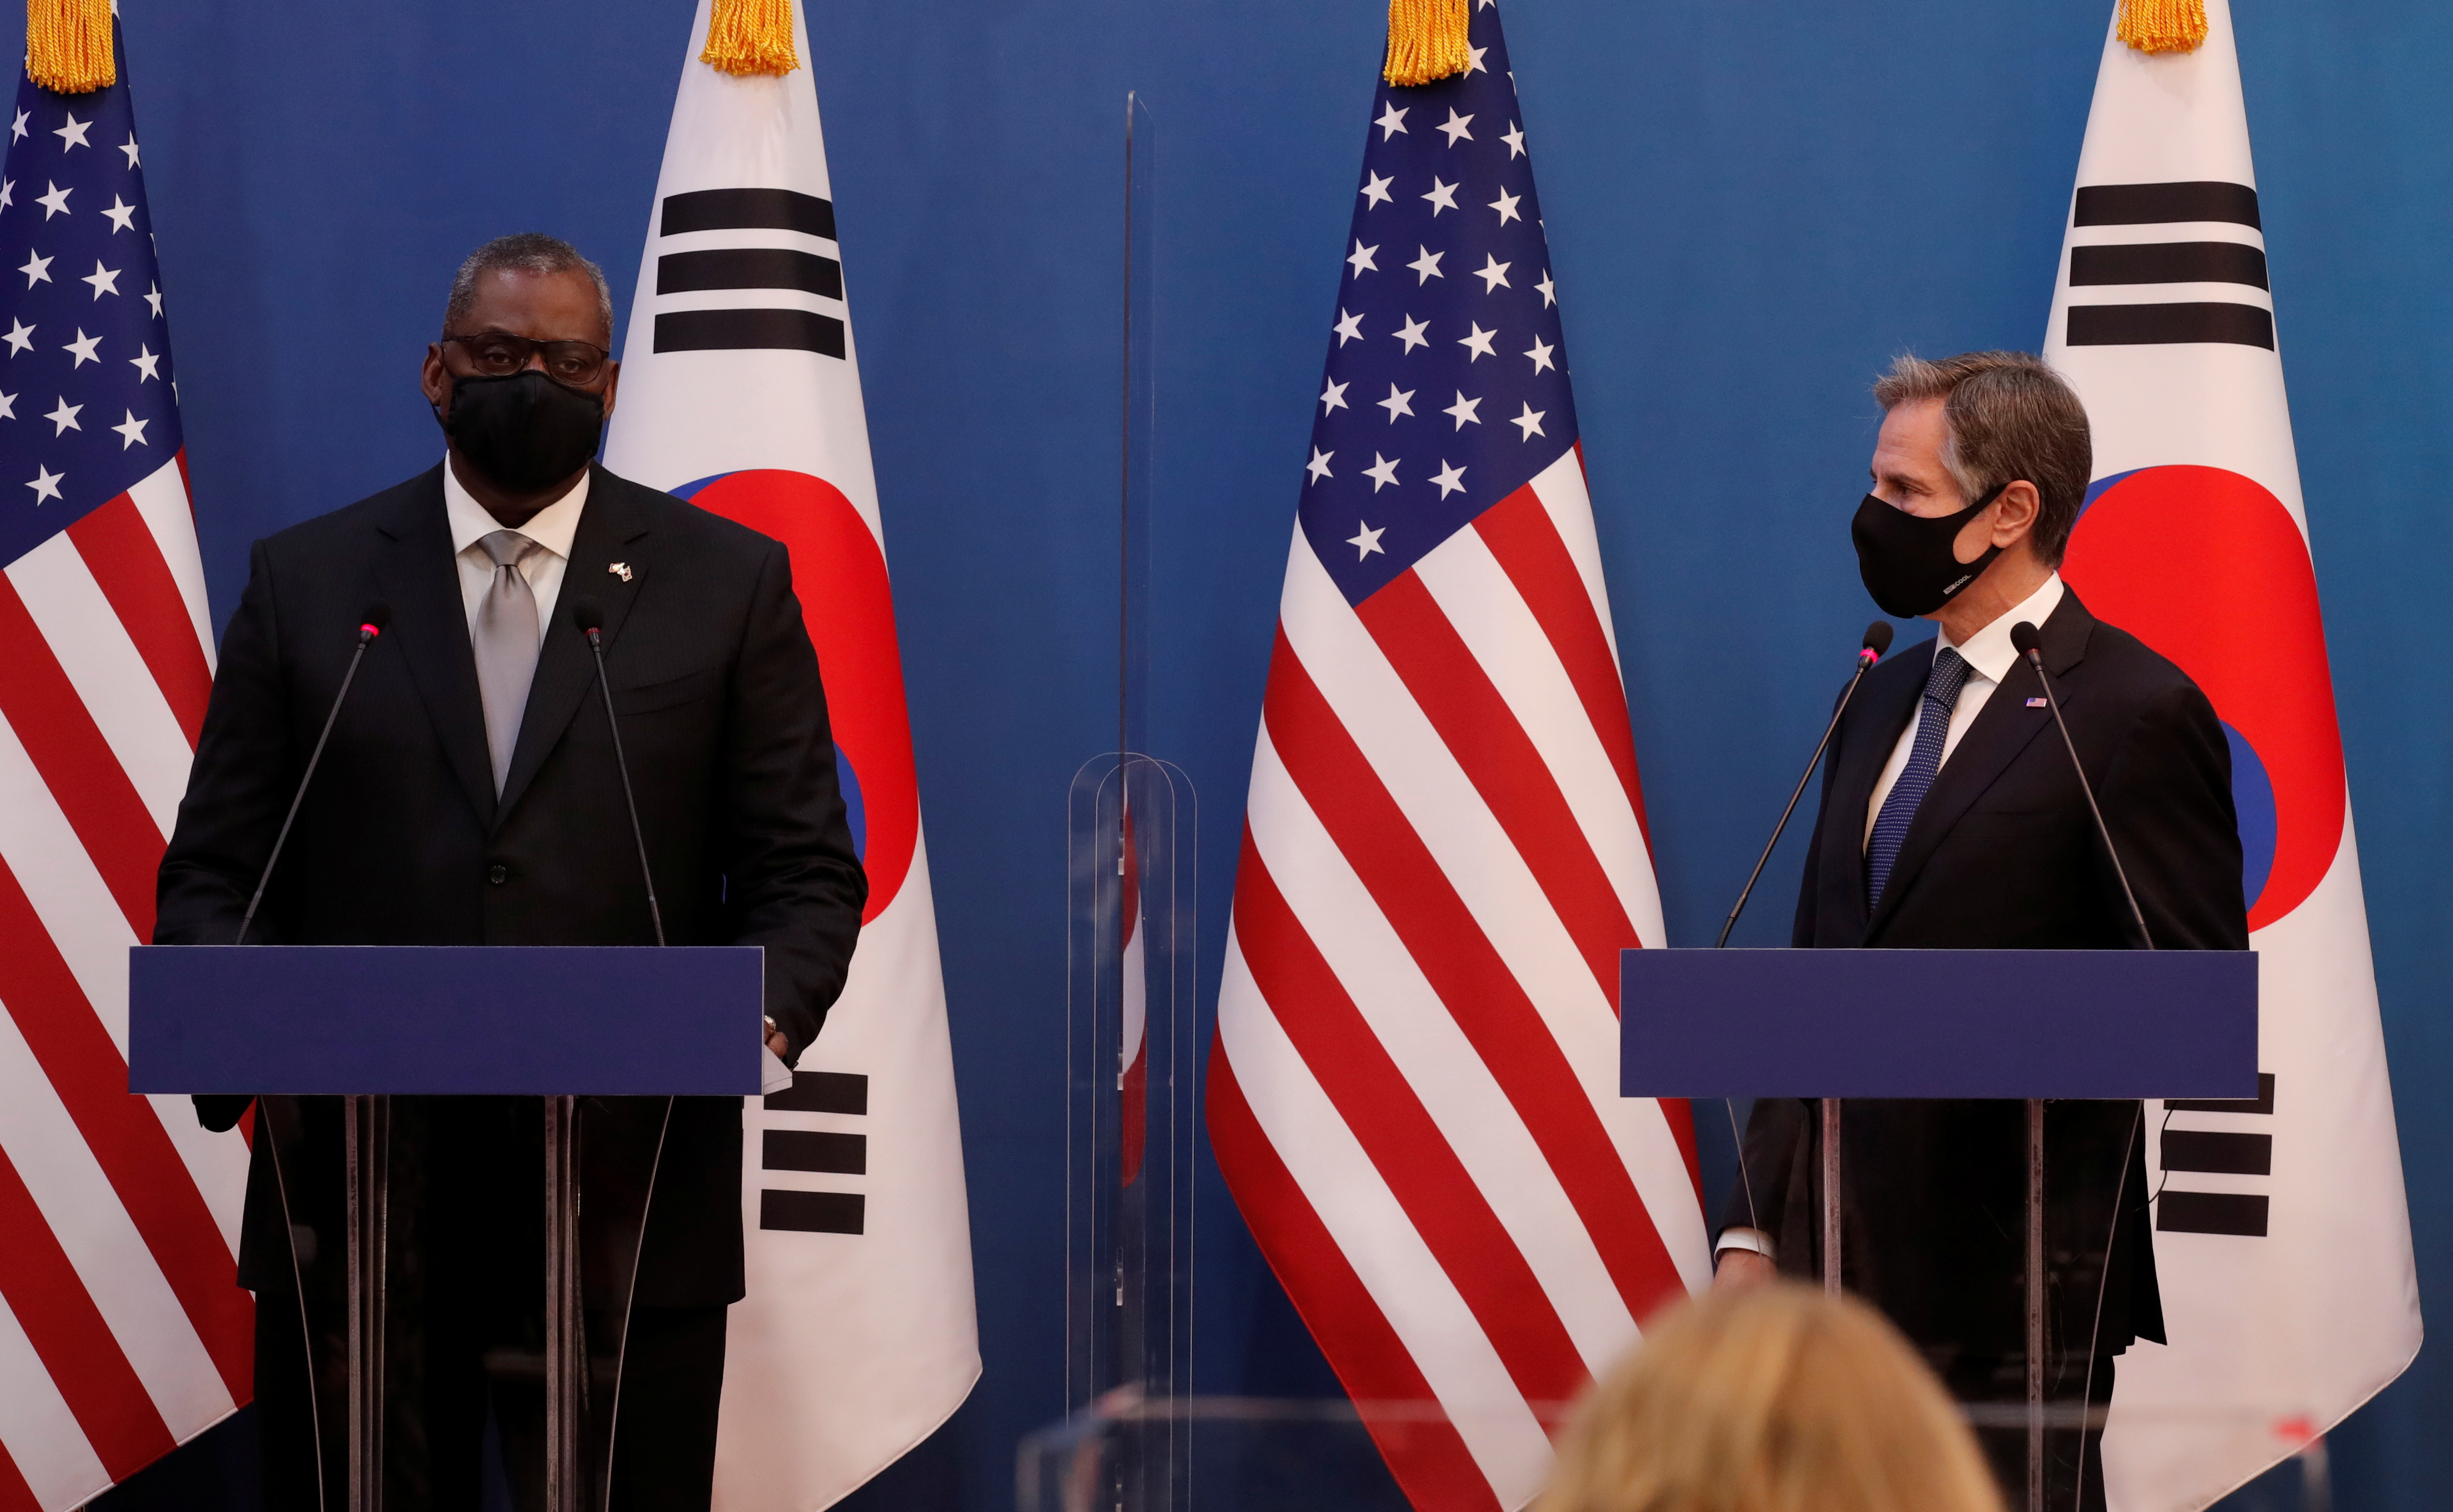 U.S. Defense Secretary Lloyd Austin speaks as U.S. Secretary of State Antony Blinken listens during a joint news conference after the Foreign and Defense Ministerial meeting between South Korea and U.S. at the Foreign Ministry in Seoul, South Korea, March 18, 2021. Lee Jin-man/Pool via REUTERS